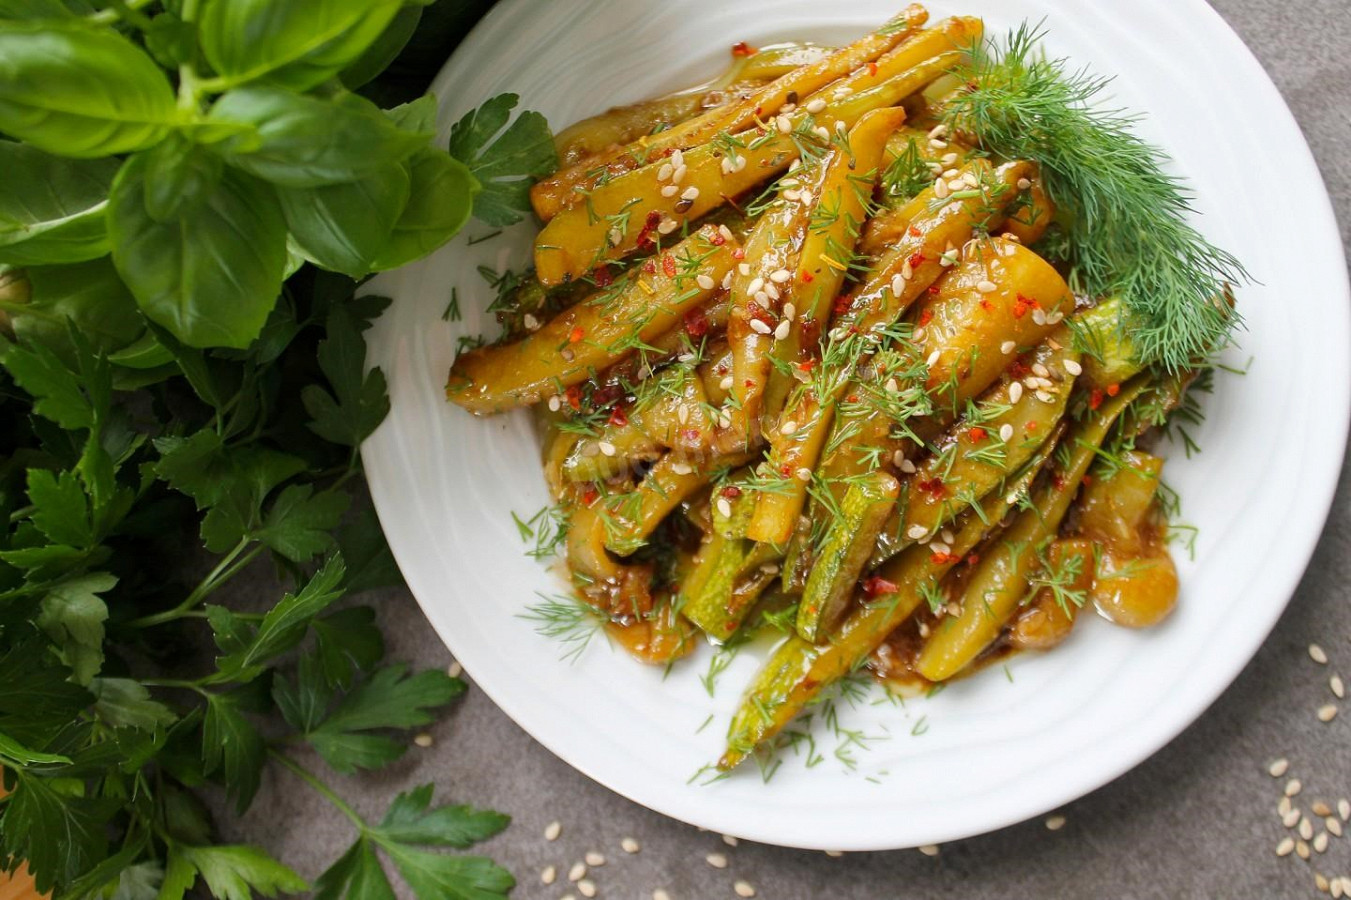 Spicy zucchini in soy sauce